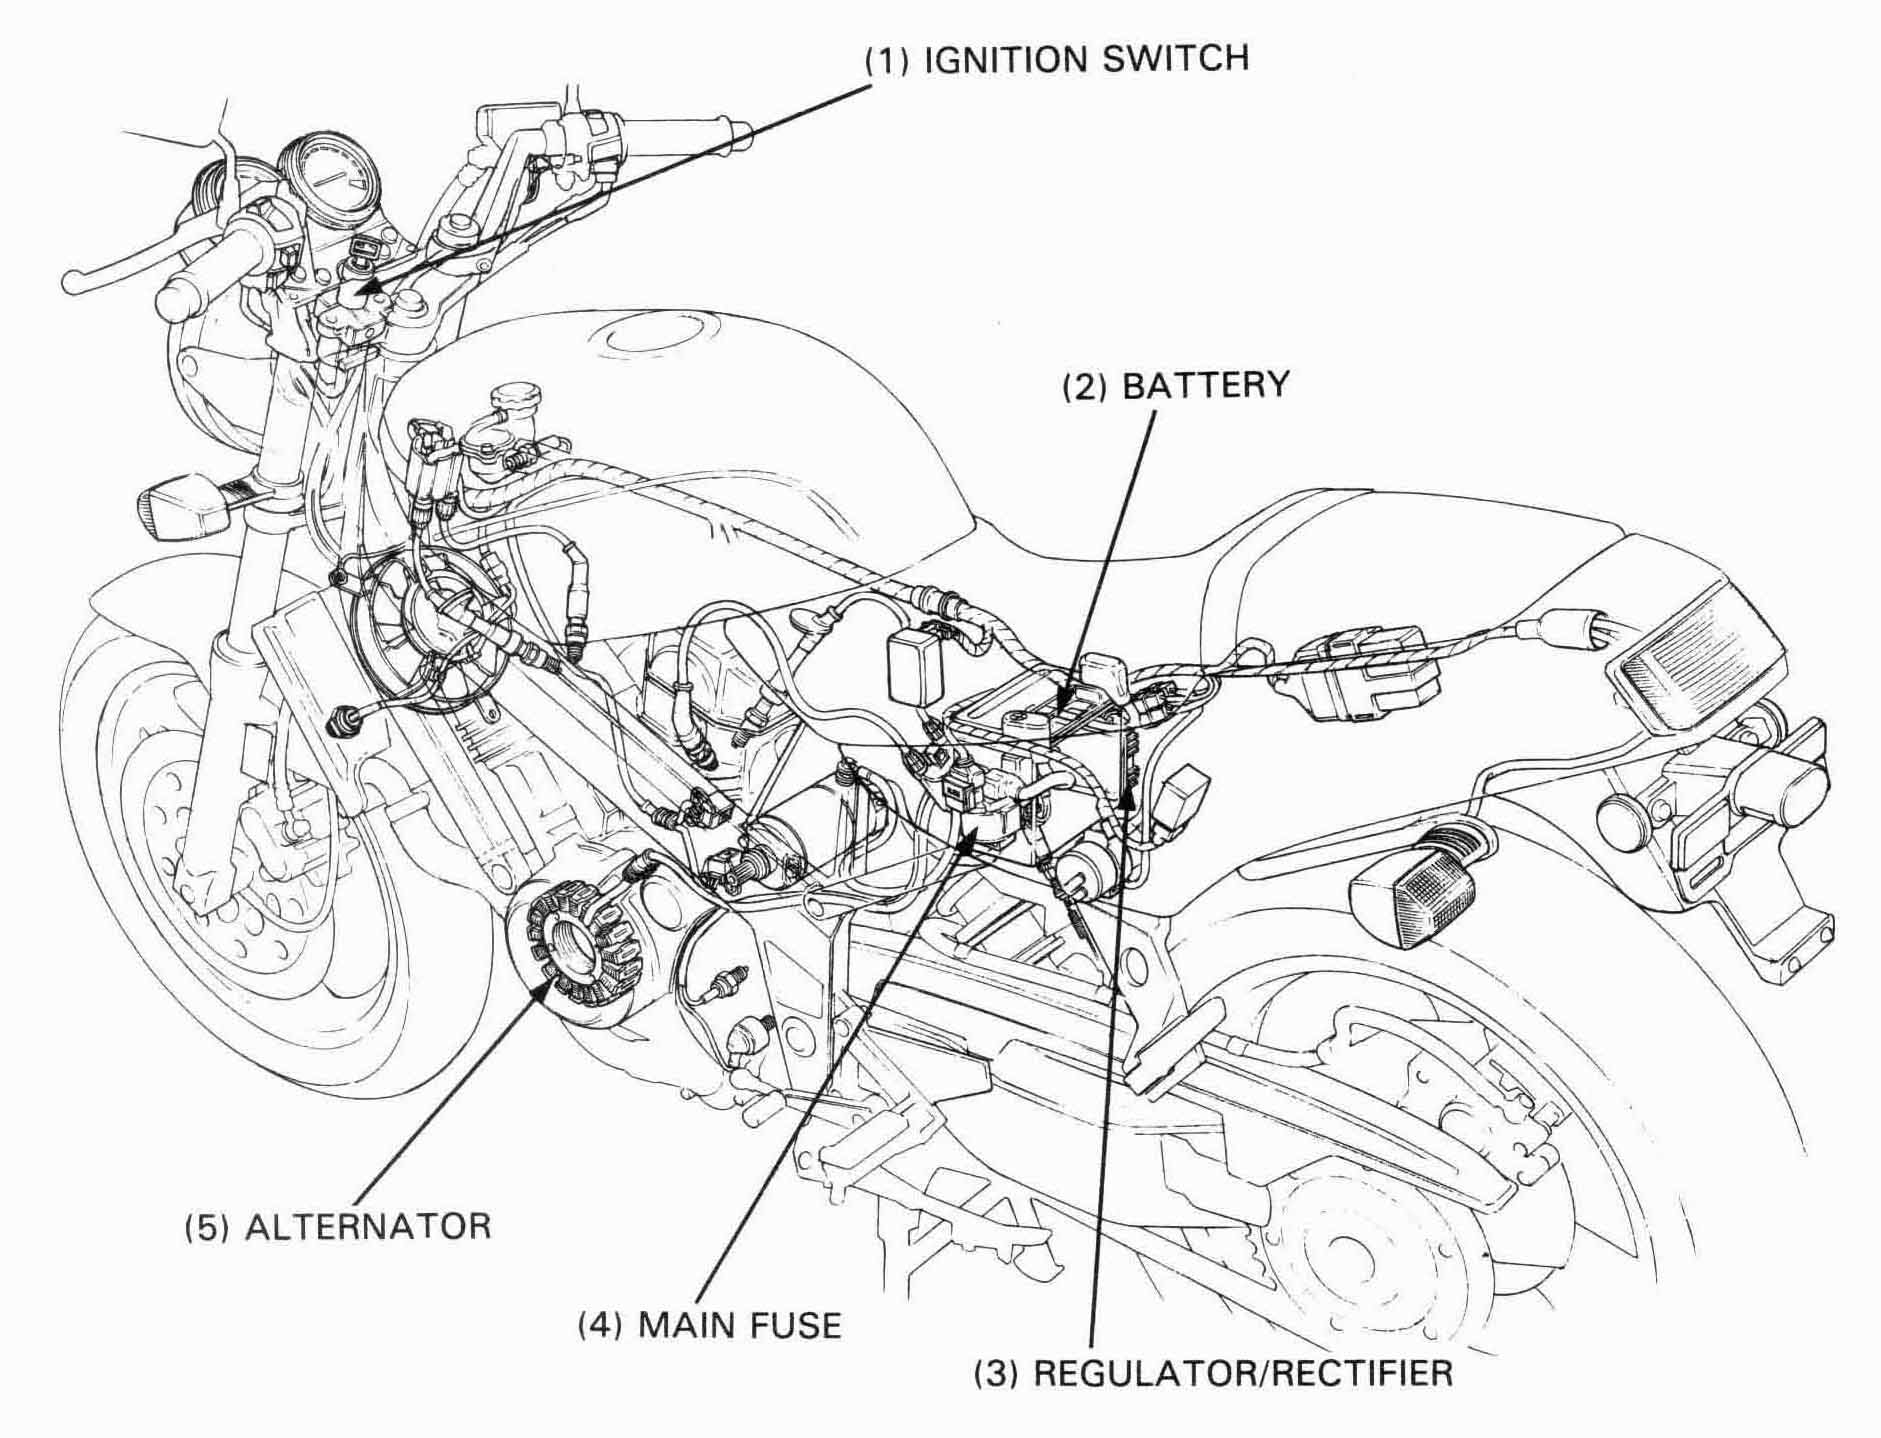 Honda NT650 service manual, section 15, Battery/Charging